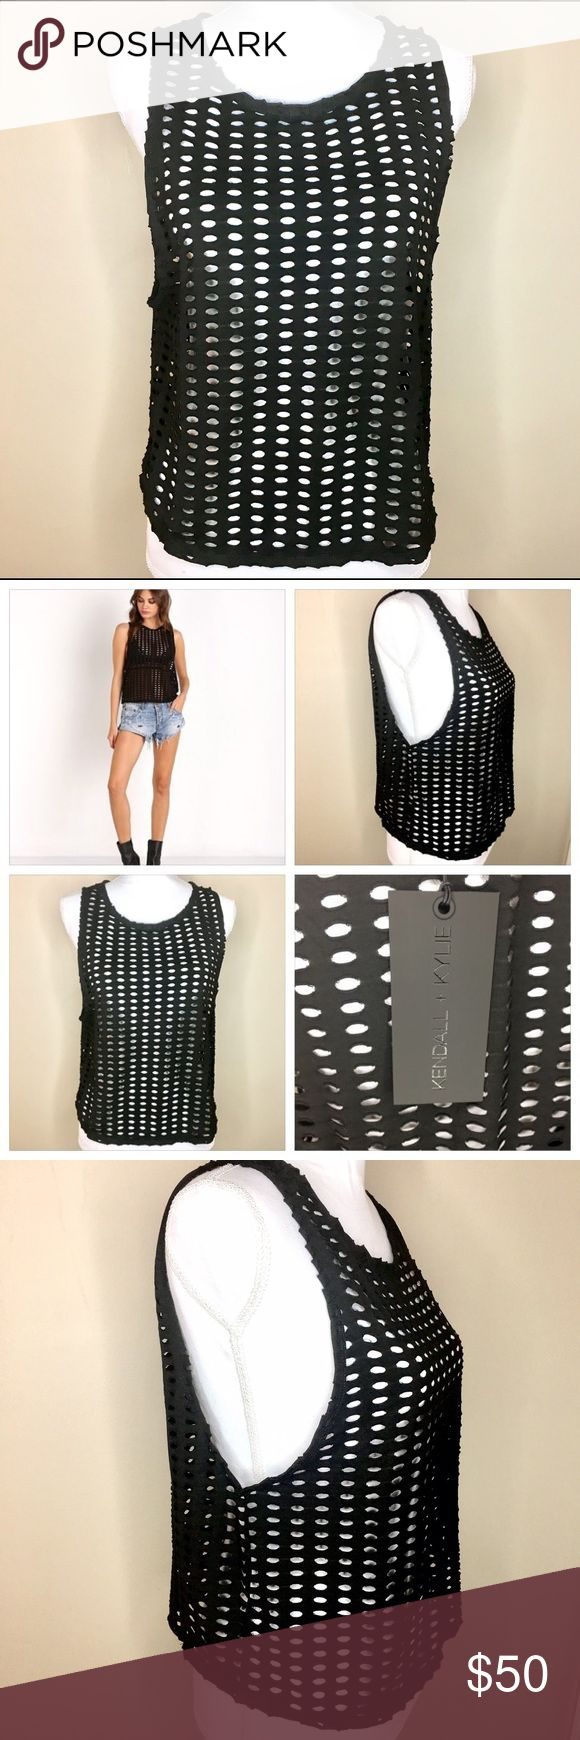 """KENDALL & KYLIE Black Laser Cut Tank Size Medium. NWT. Black Kendall & Kylie laser cut tank top. Size Medium. Polyester. Shoulder to hem measures approx 21"""". Armpit to armpit measures 19"""". Fabric does have some stretch. Kendall & Kylie Tops Tank Tops"""